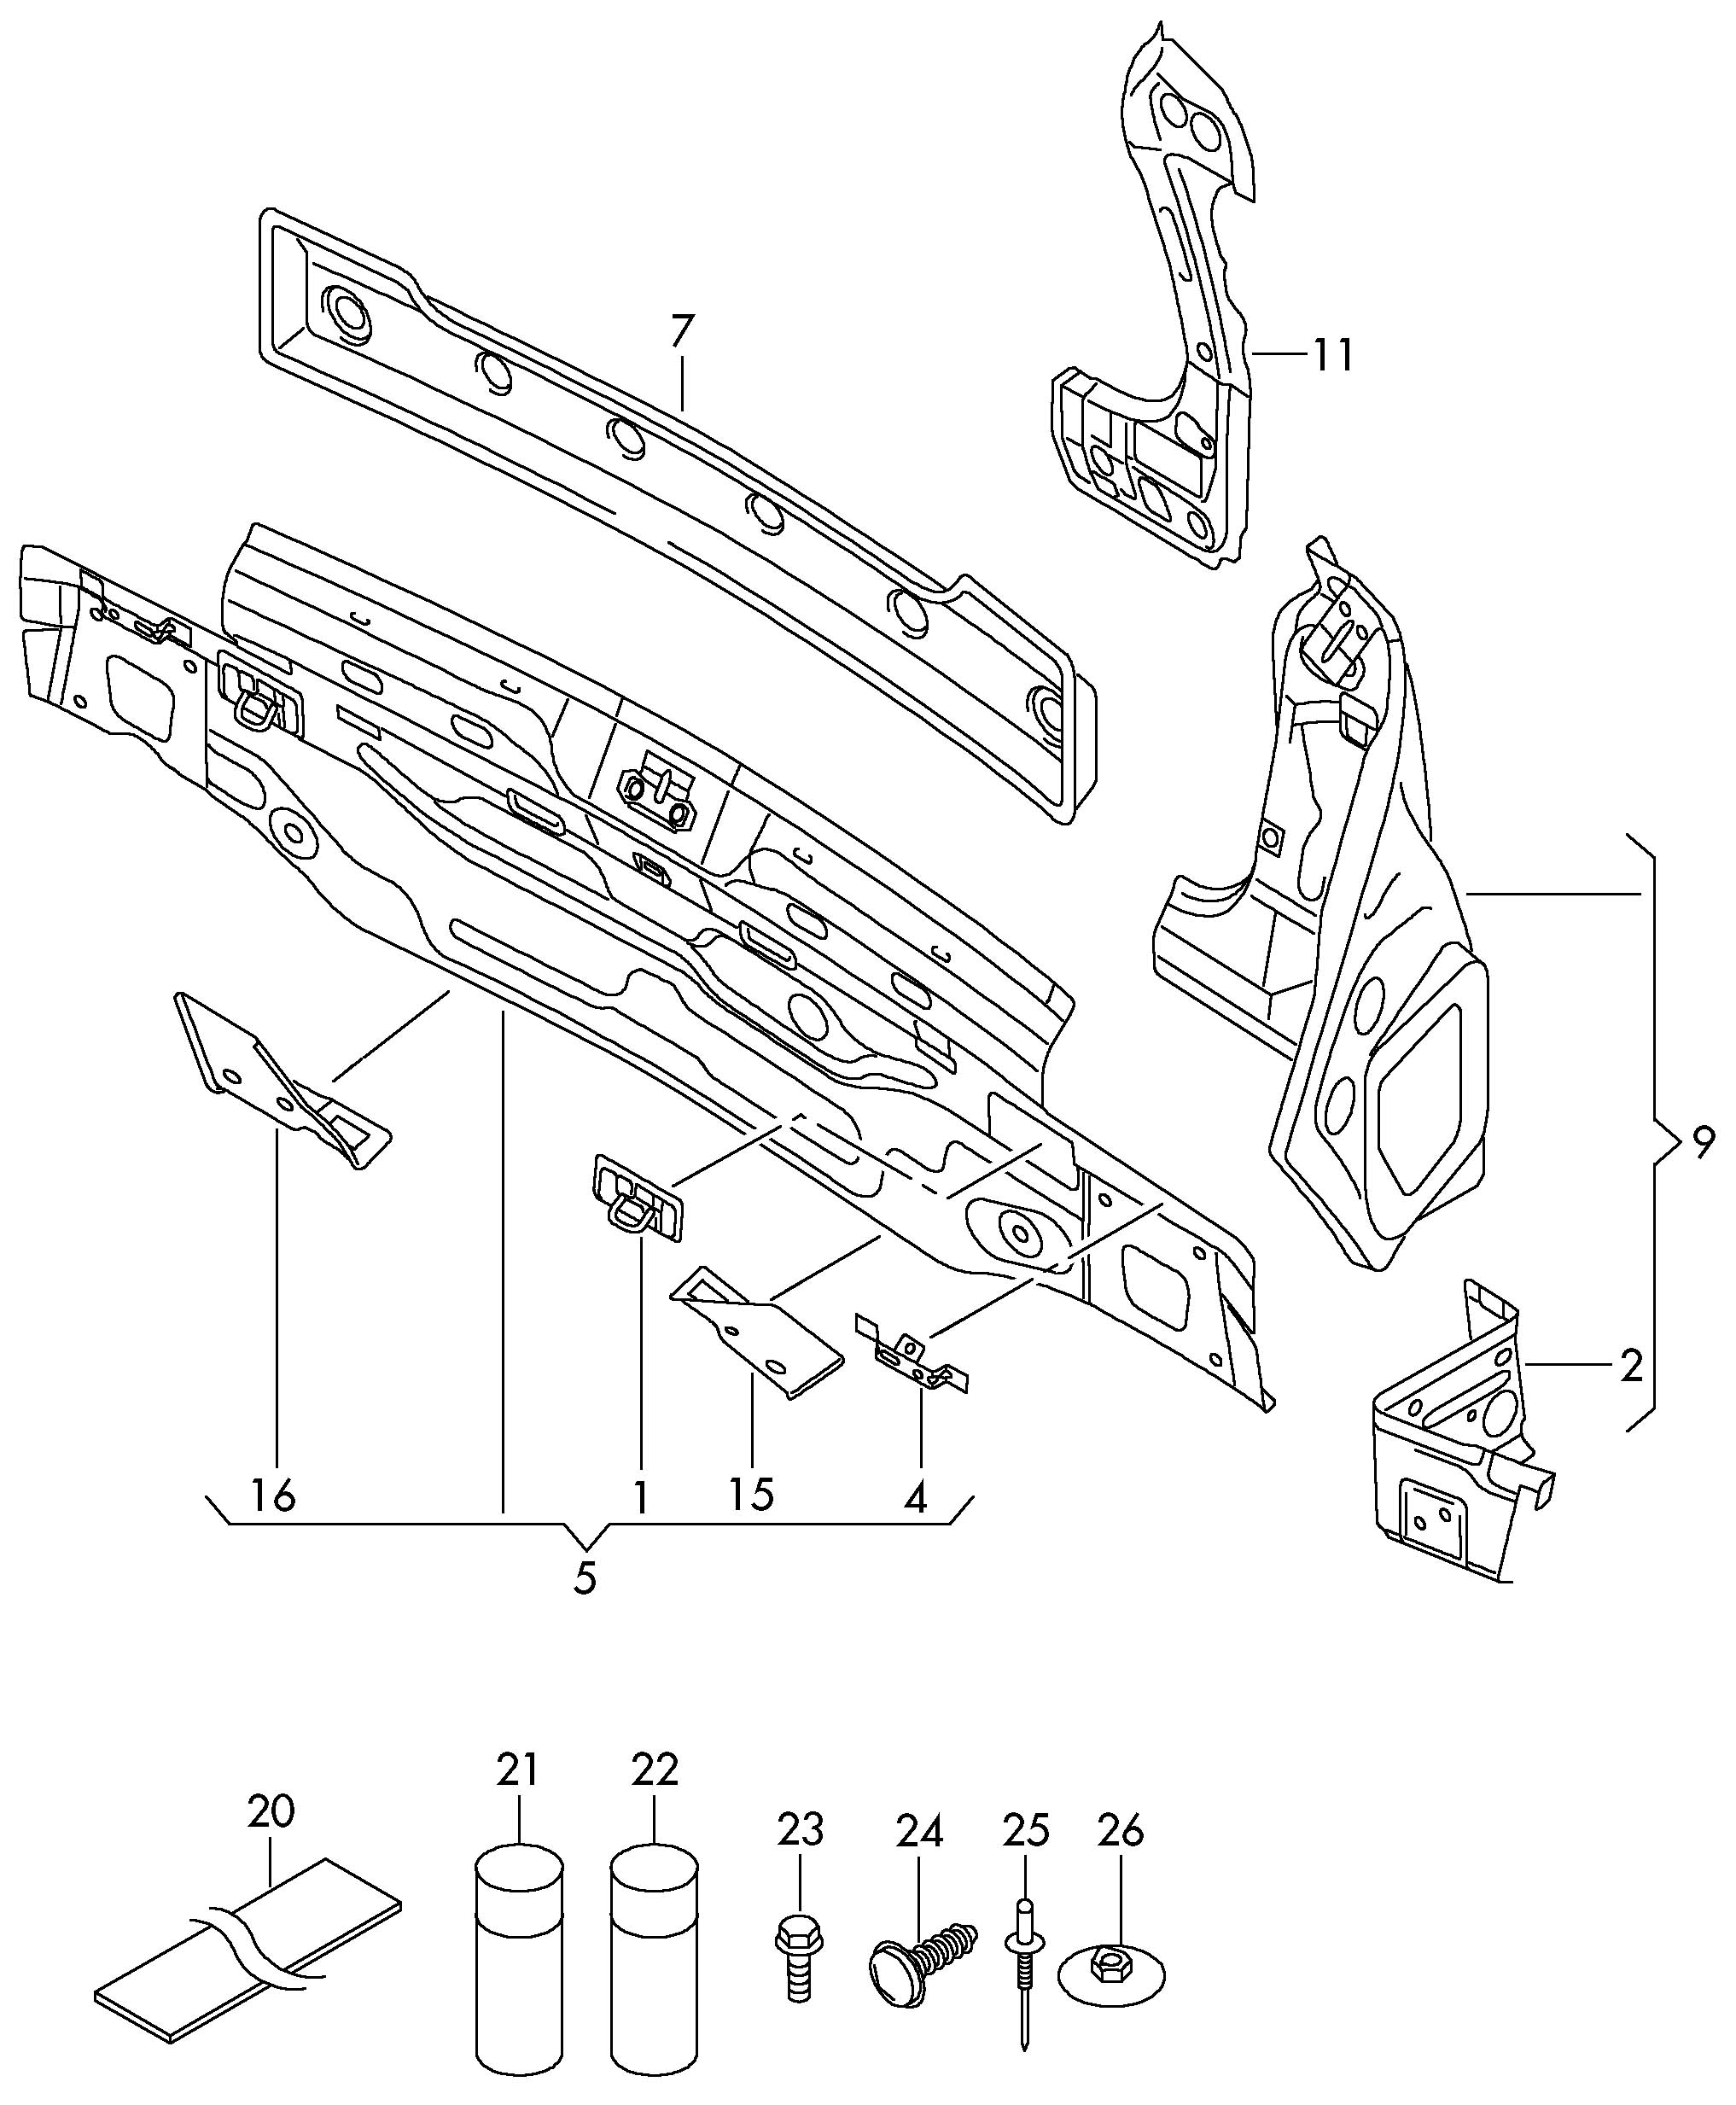 Volkswagen Rabbit Mounting For Taillight Taillight